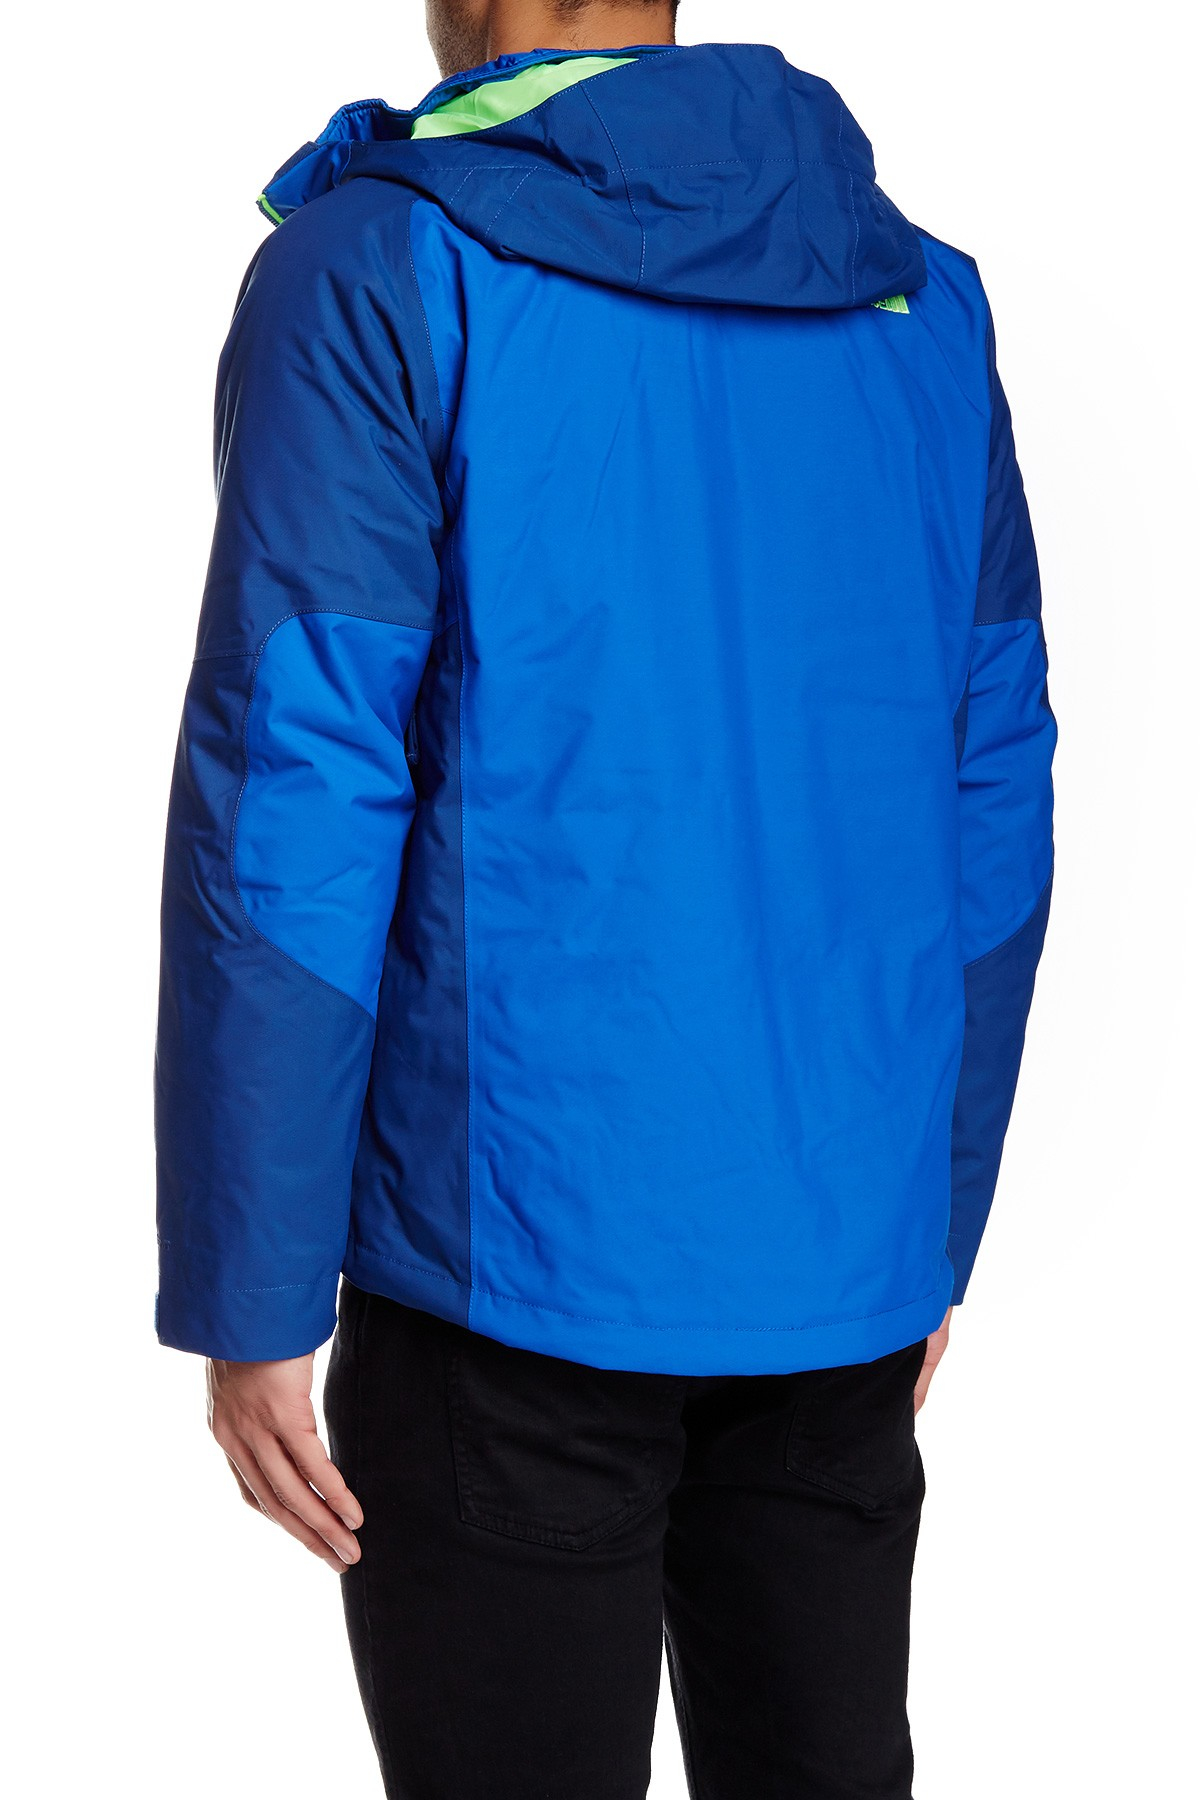 ... low price lyst the north face sumner triclimate jacket in blue for men  bf329 4ee33 7902701cf